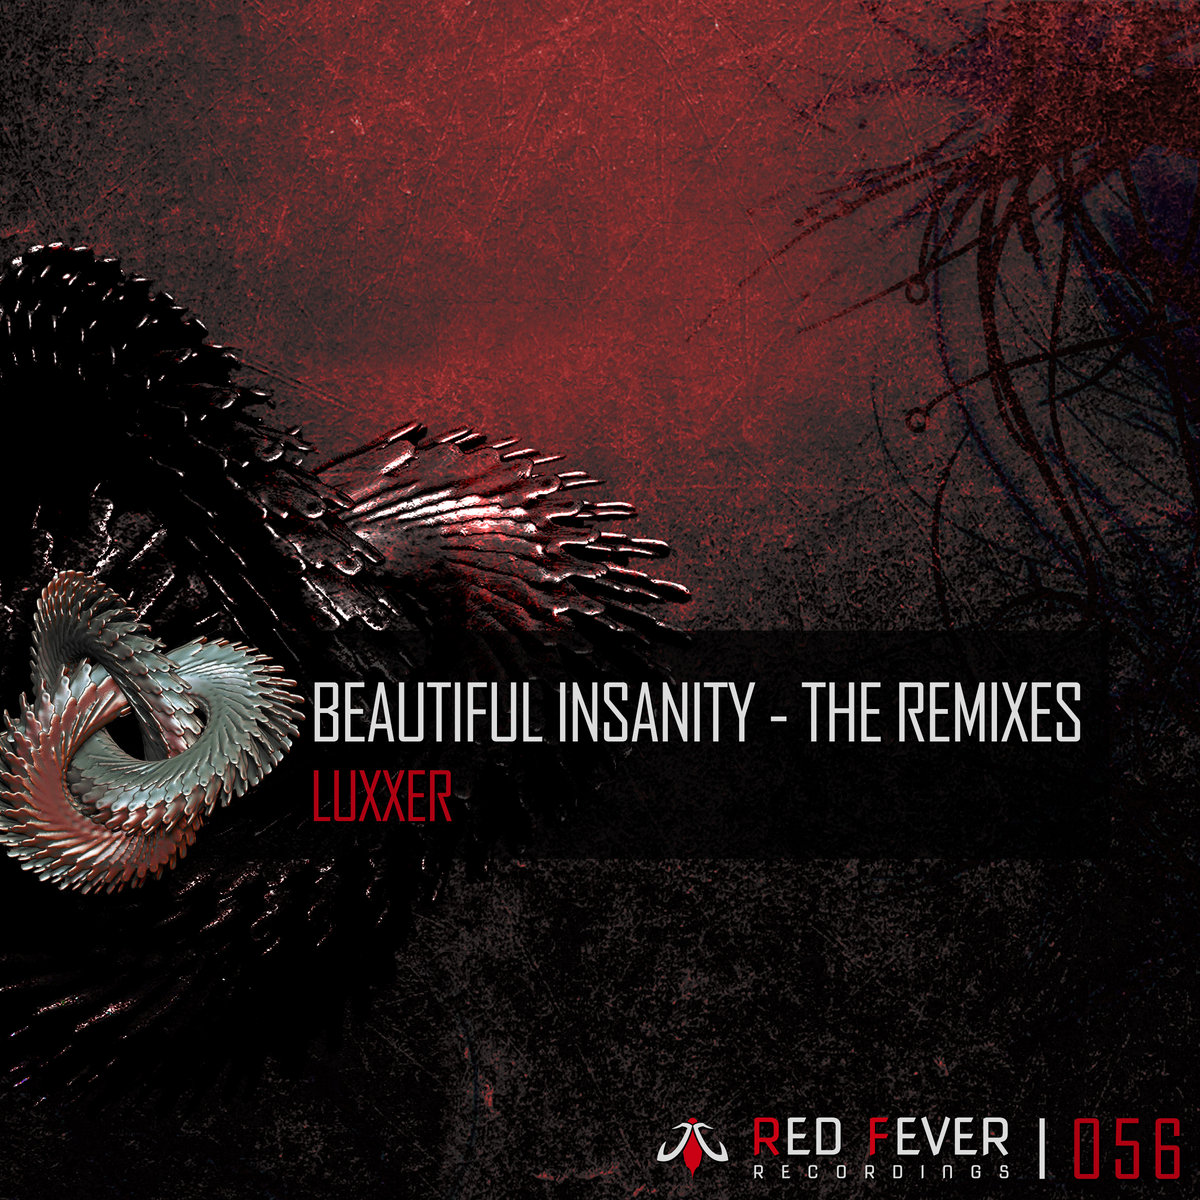 Luxxer - Beautiful Insanity (Carnage & Cluster remix) @ 'Beautiful Insanity (The remixes)' album (carnage, cluster)